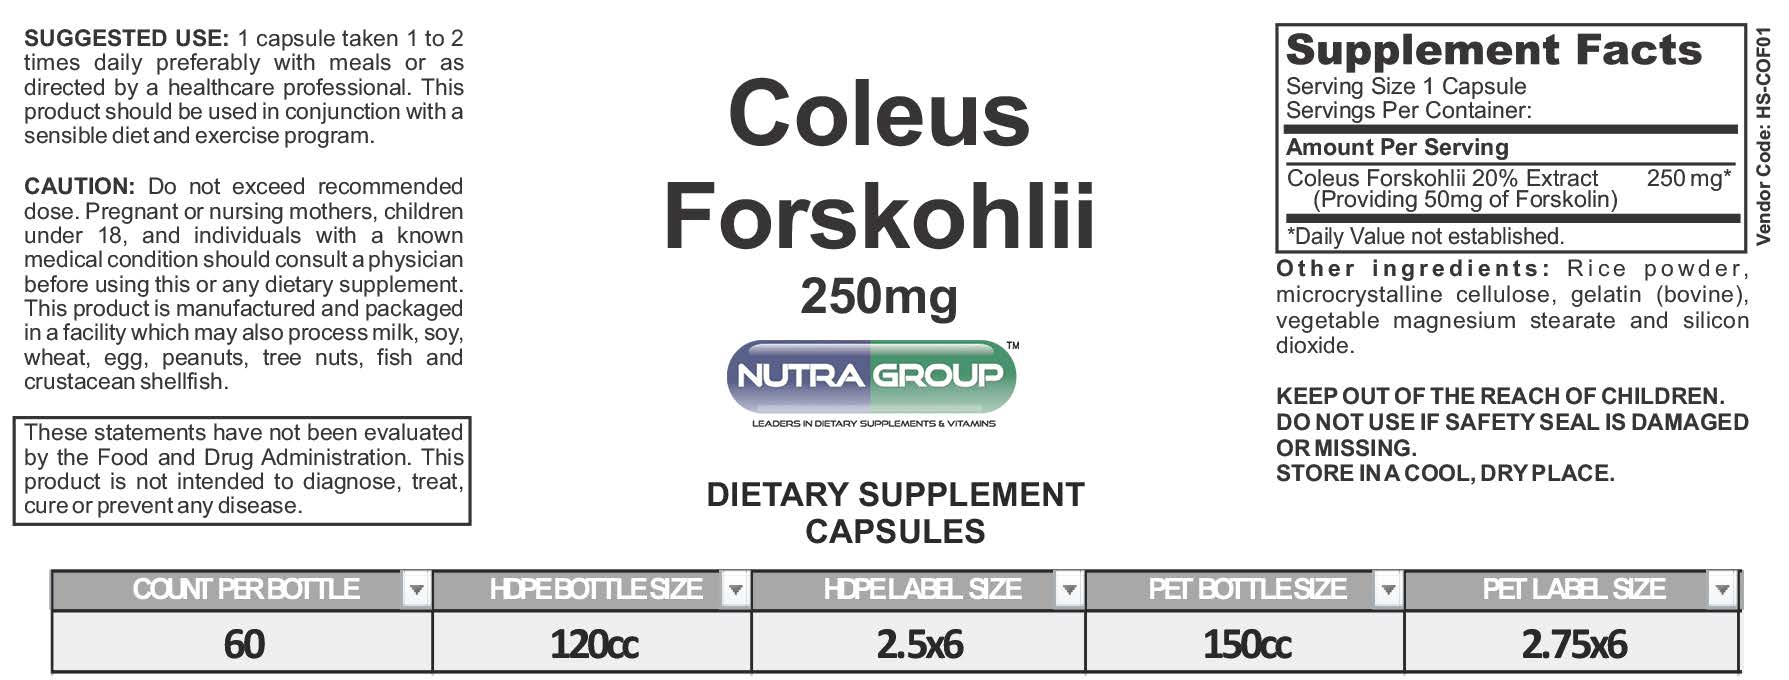 Private Label Coleus Forskohlii supplement